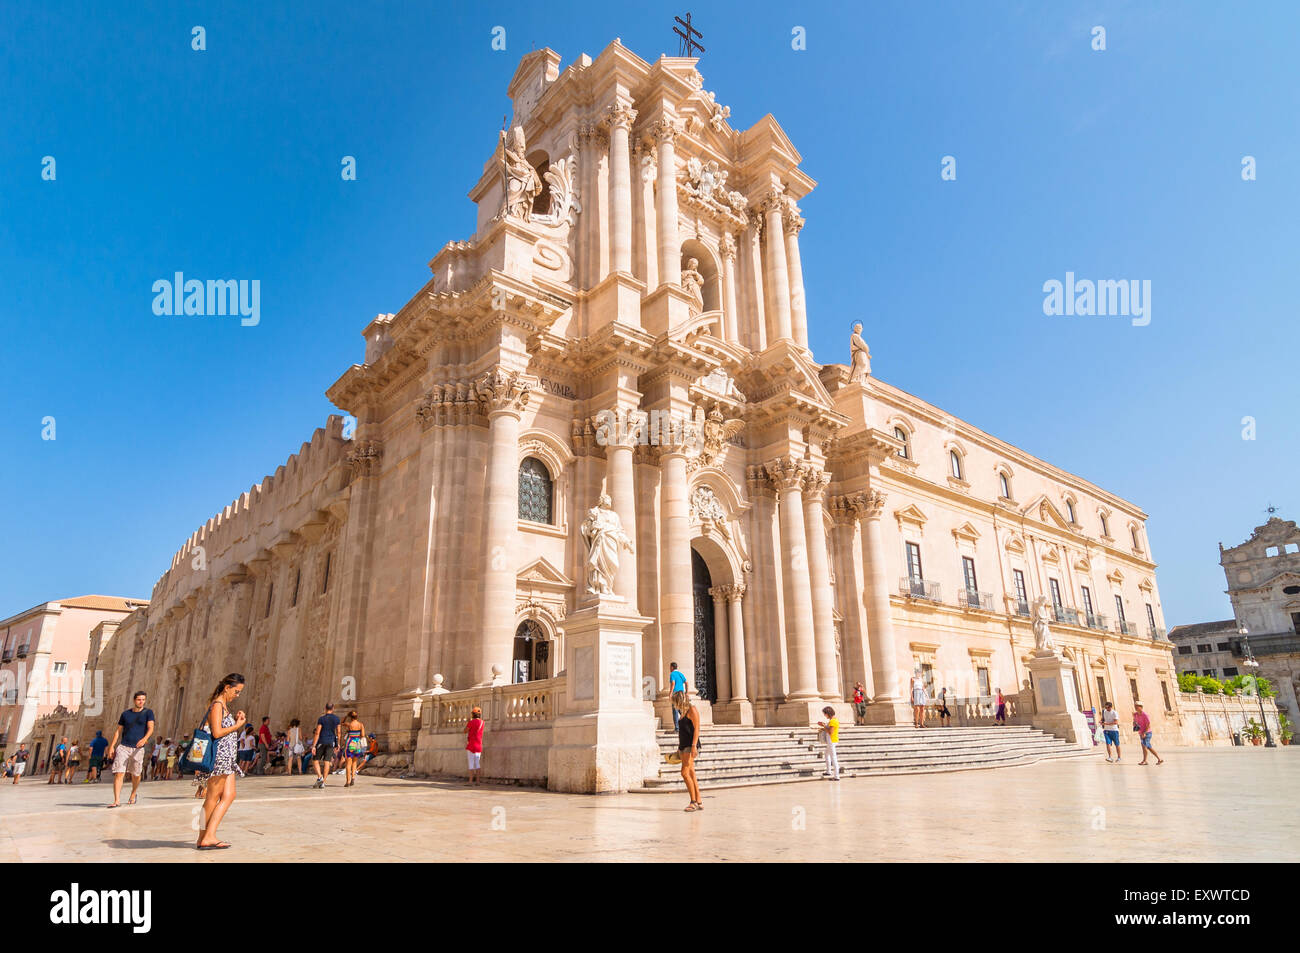 SYRACUSE, ITALY - AUGUST 16, 2014: tourists and locals visit main square Piazza del Duomo in Ortigia, Syracuse, - Stock Image